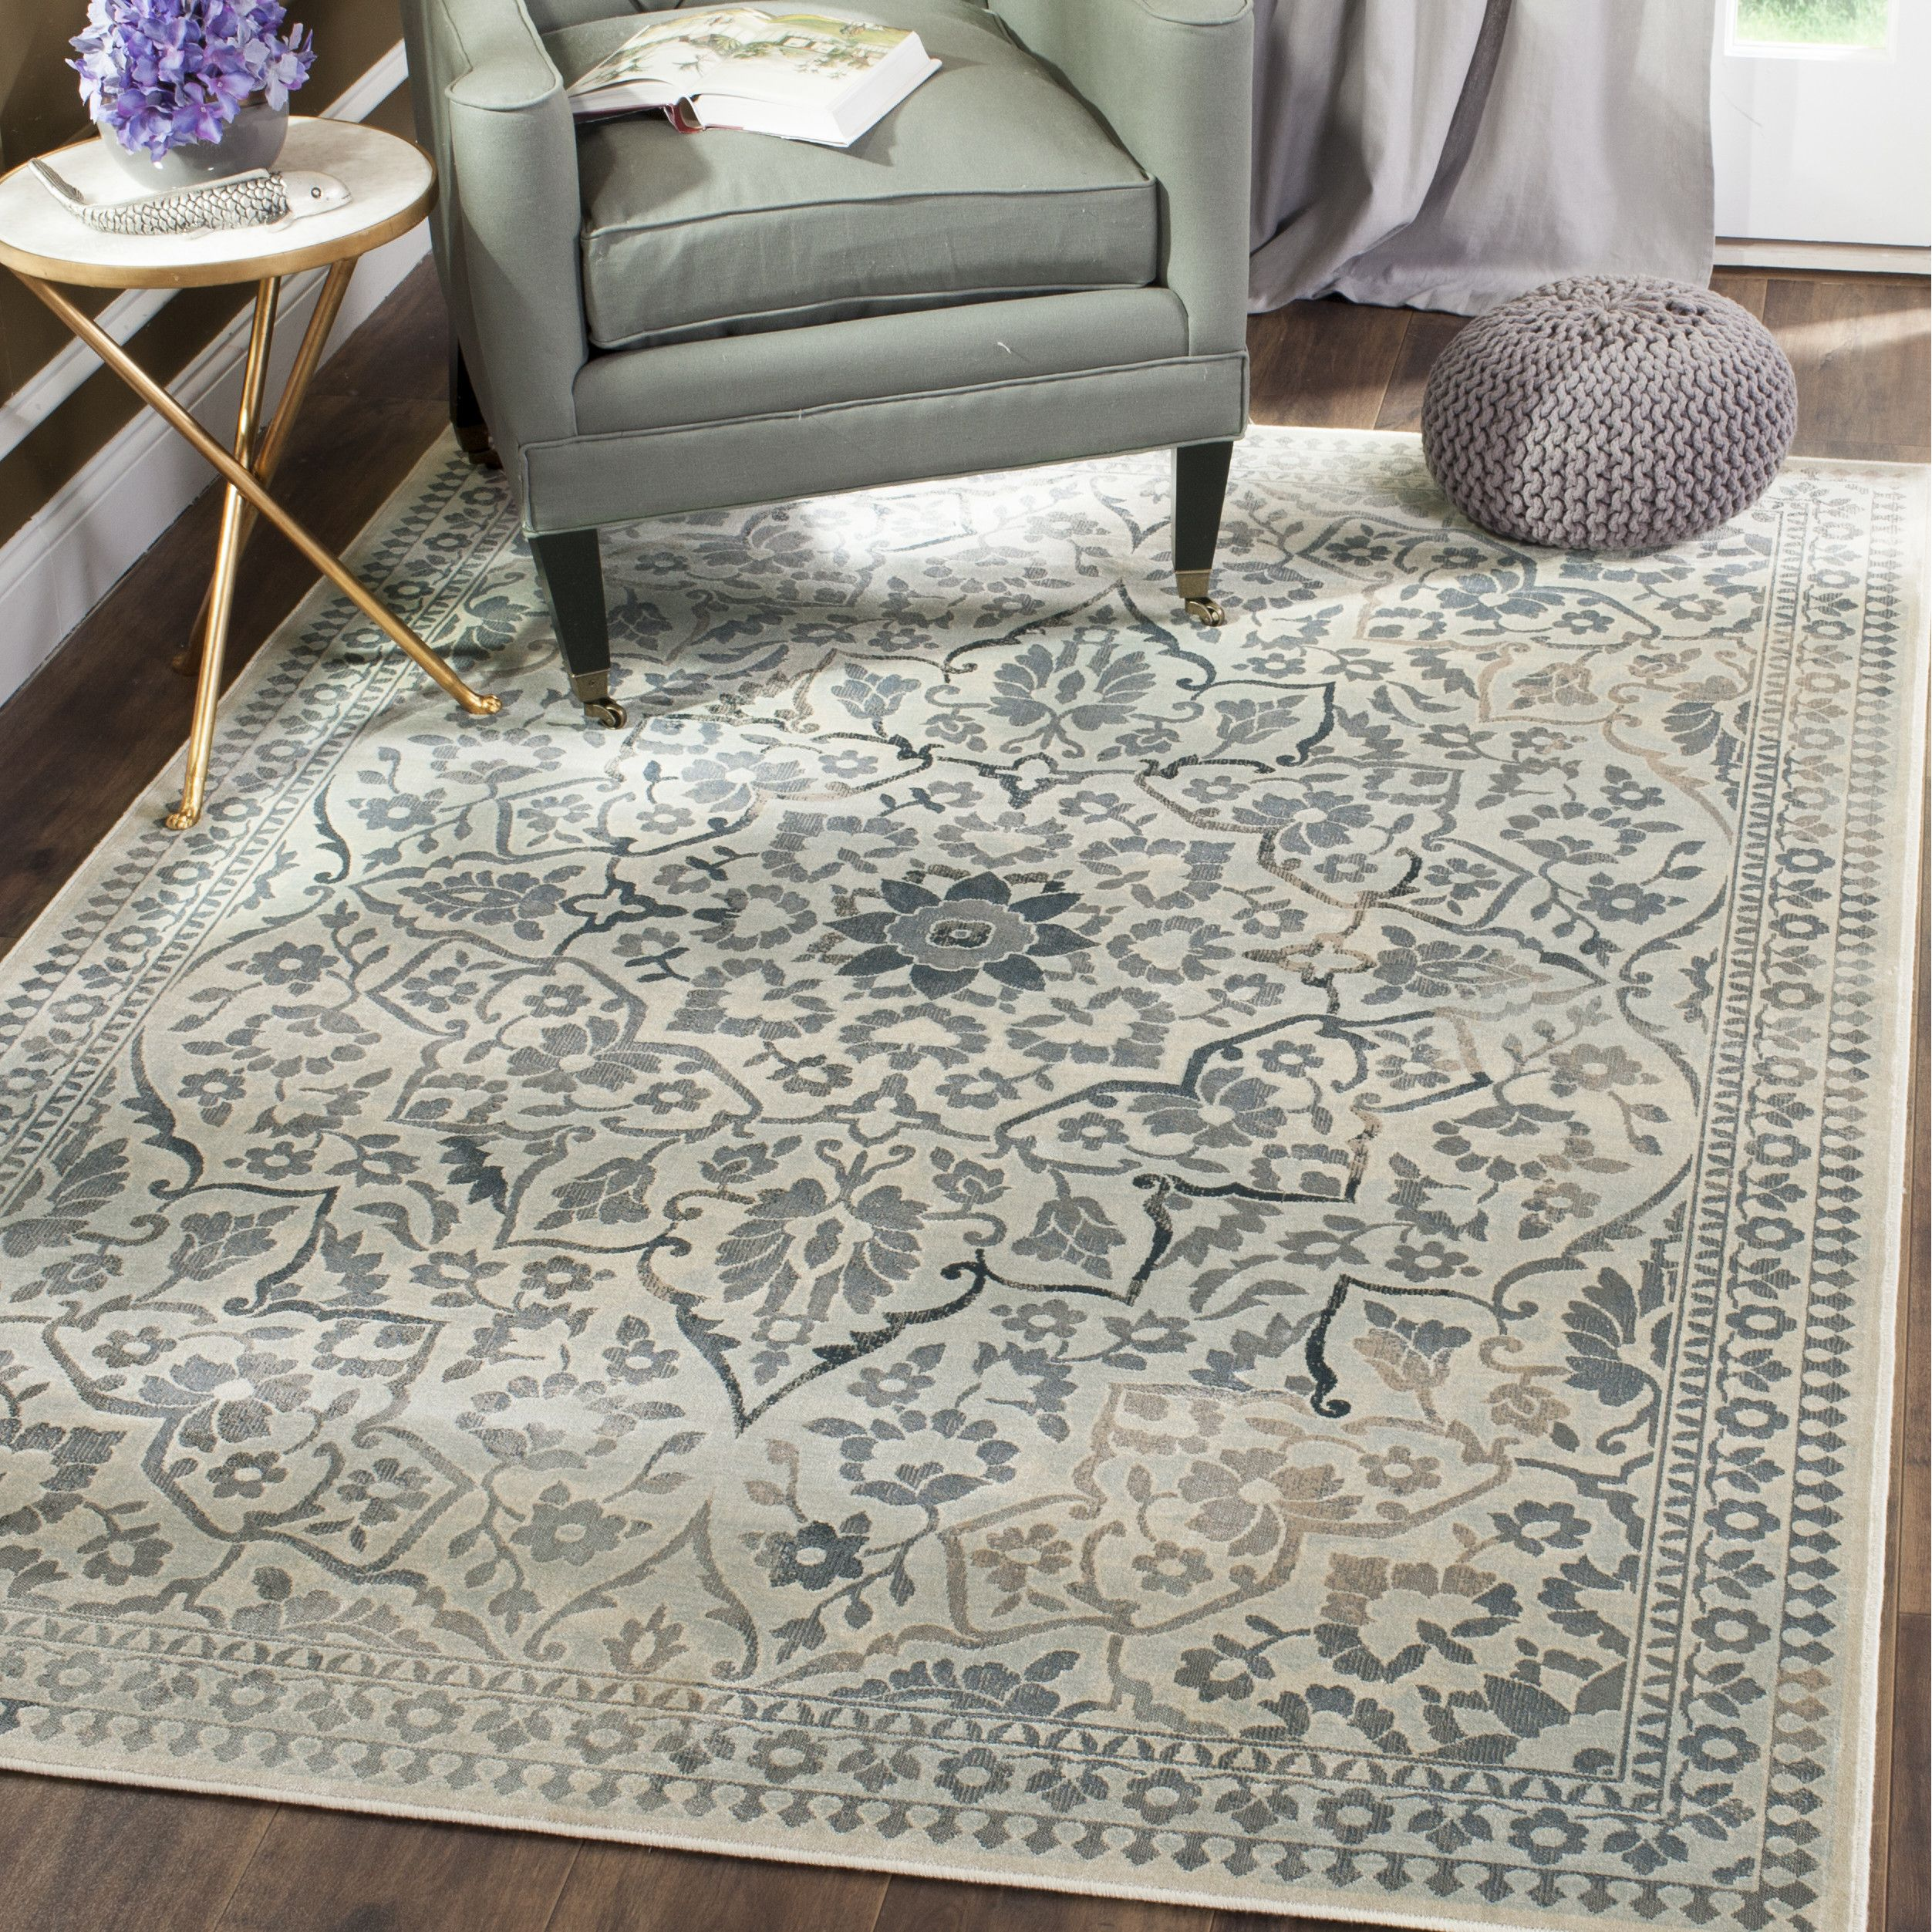 Wonderful Lark Manor Malakoff Cream/Light Blue Area Rug Part 30